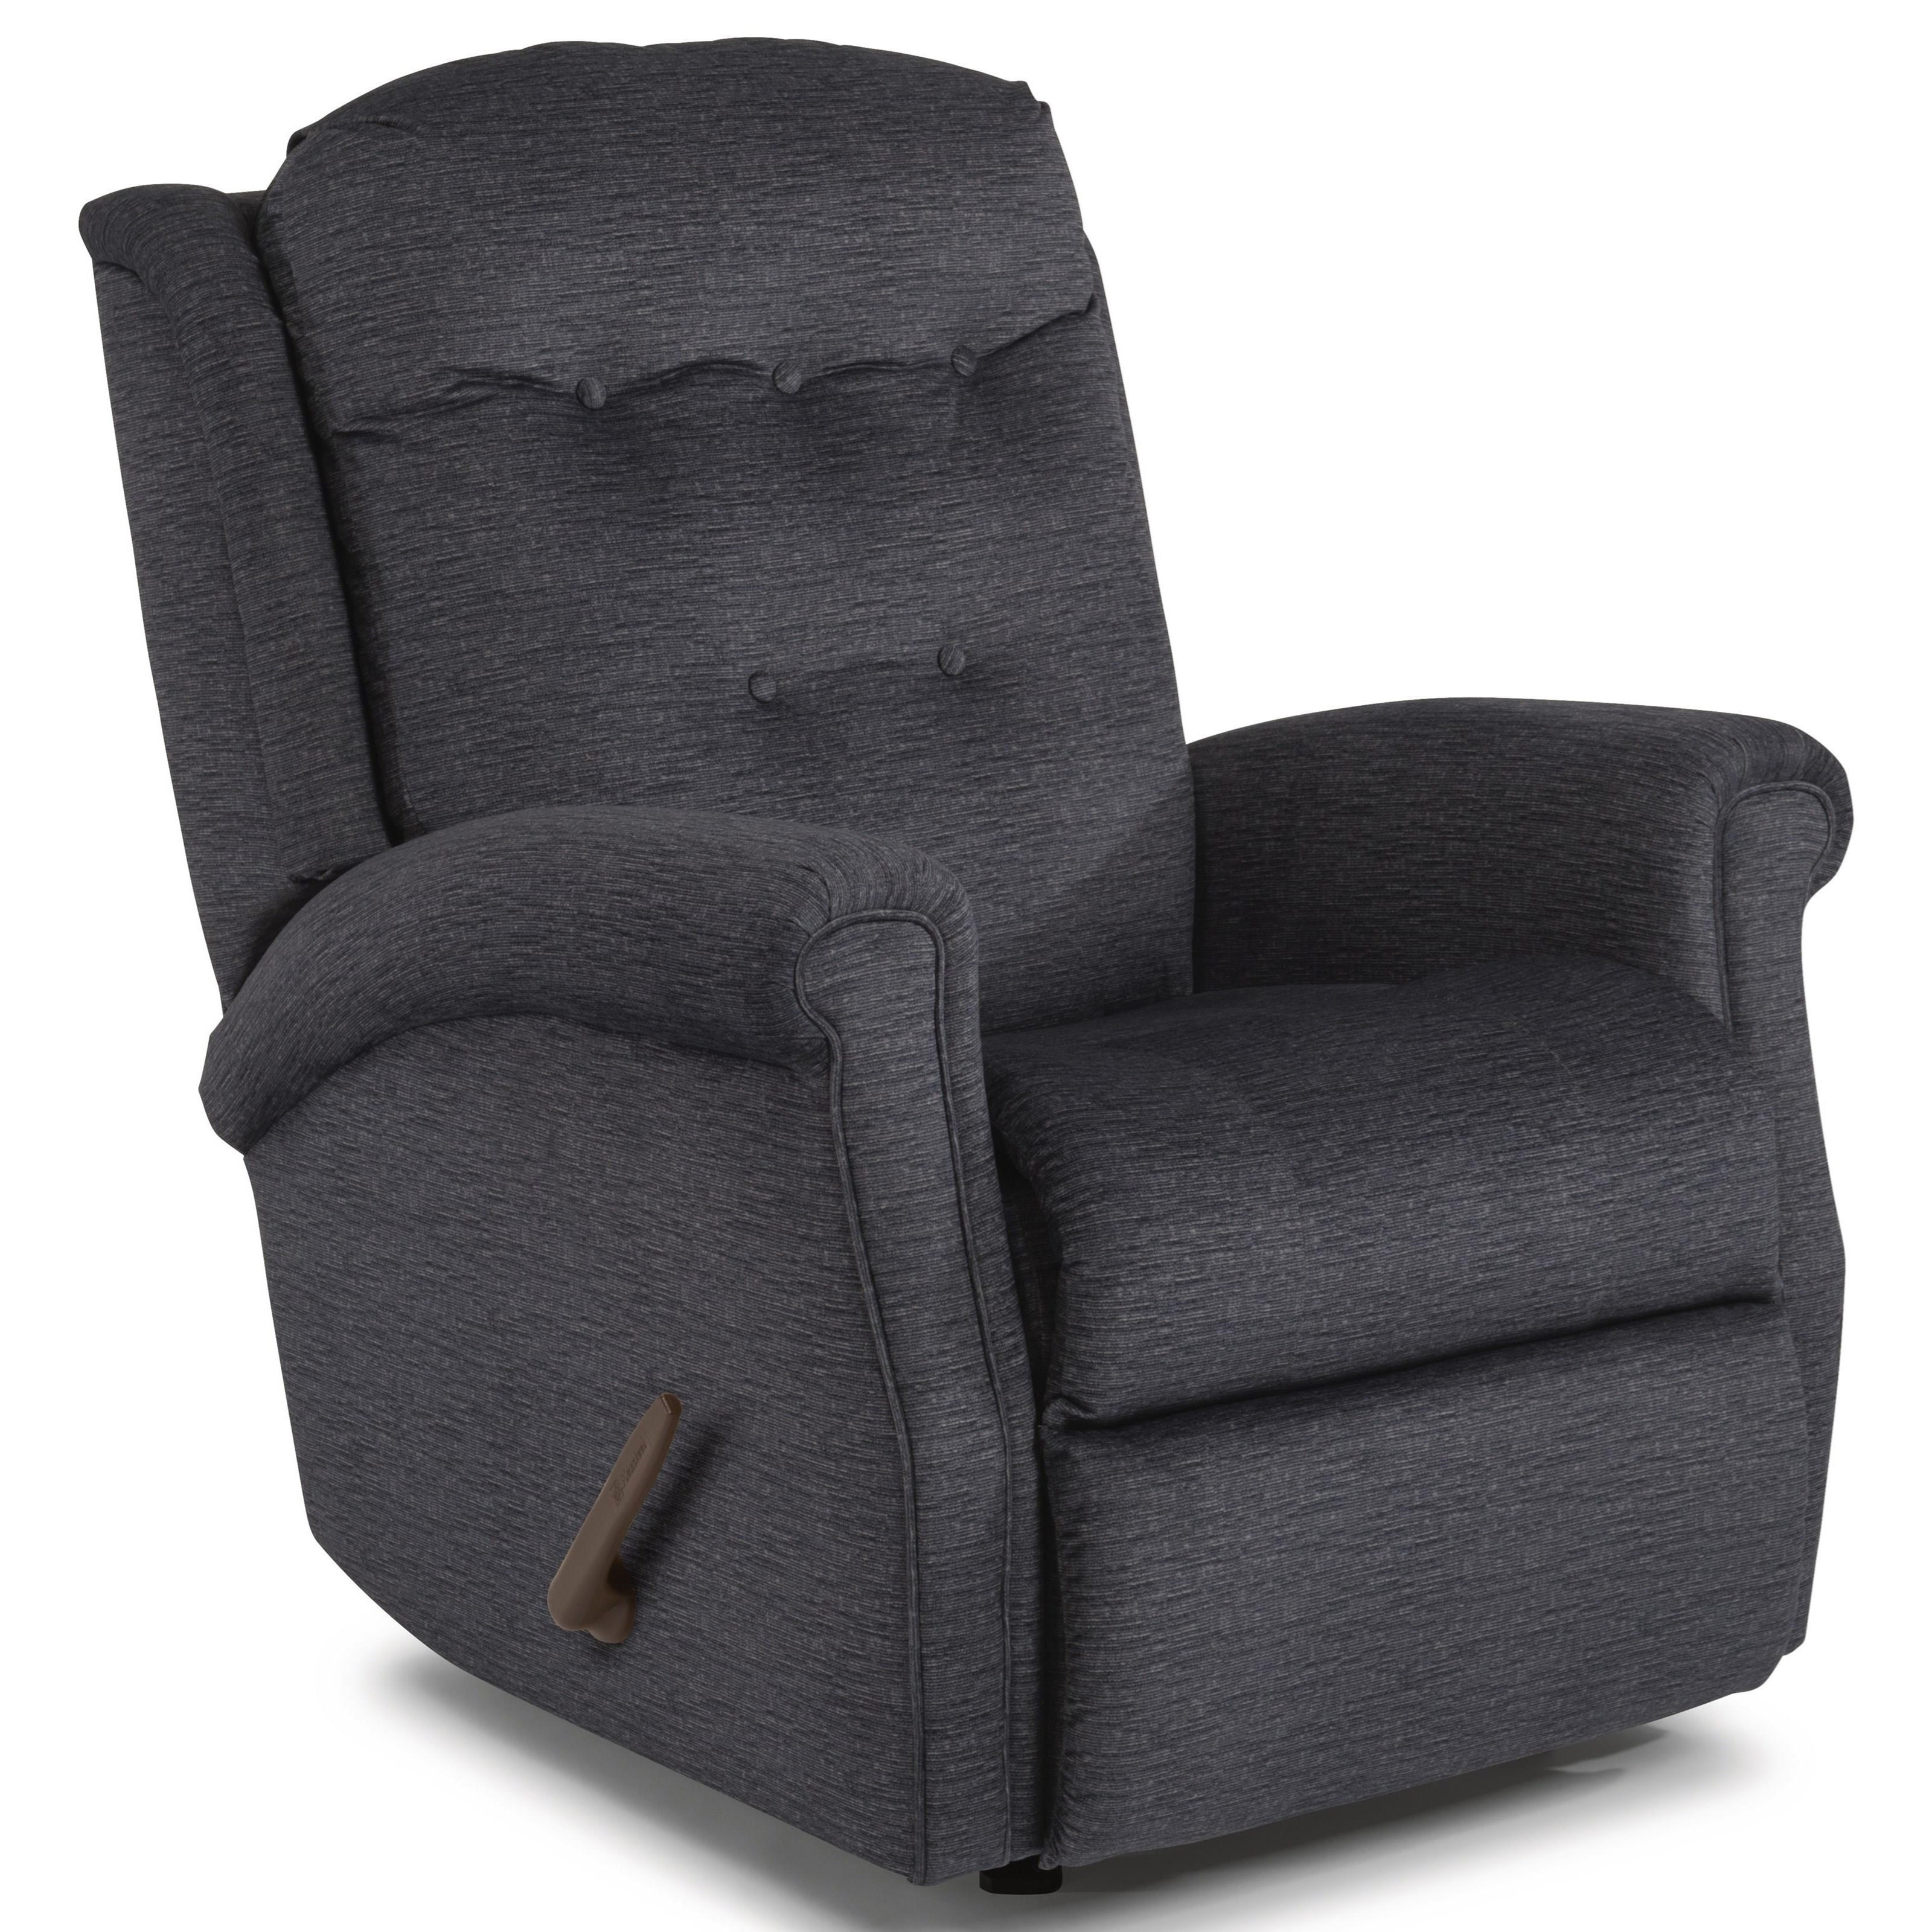 Minnie Rocking Recliner  by Flexsteel at Furniture and ApplianceMart